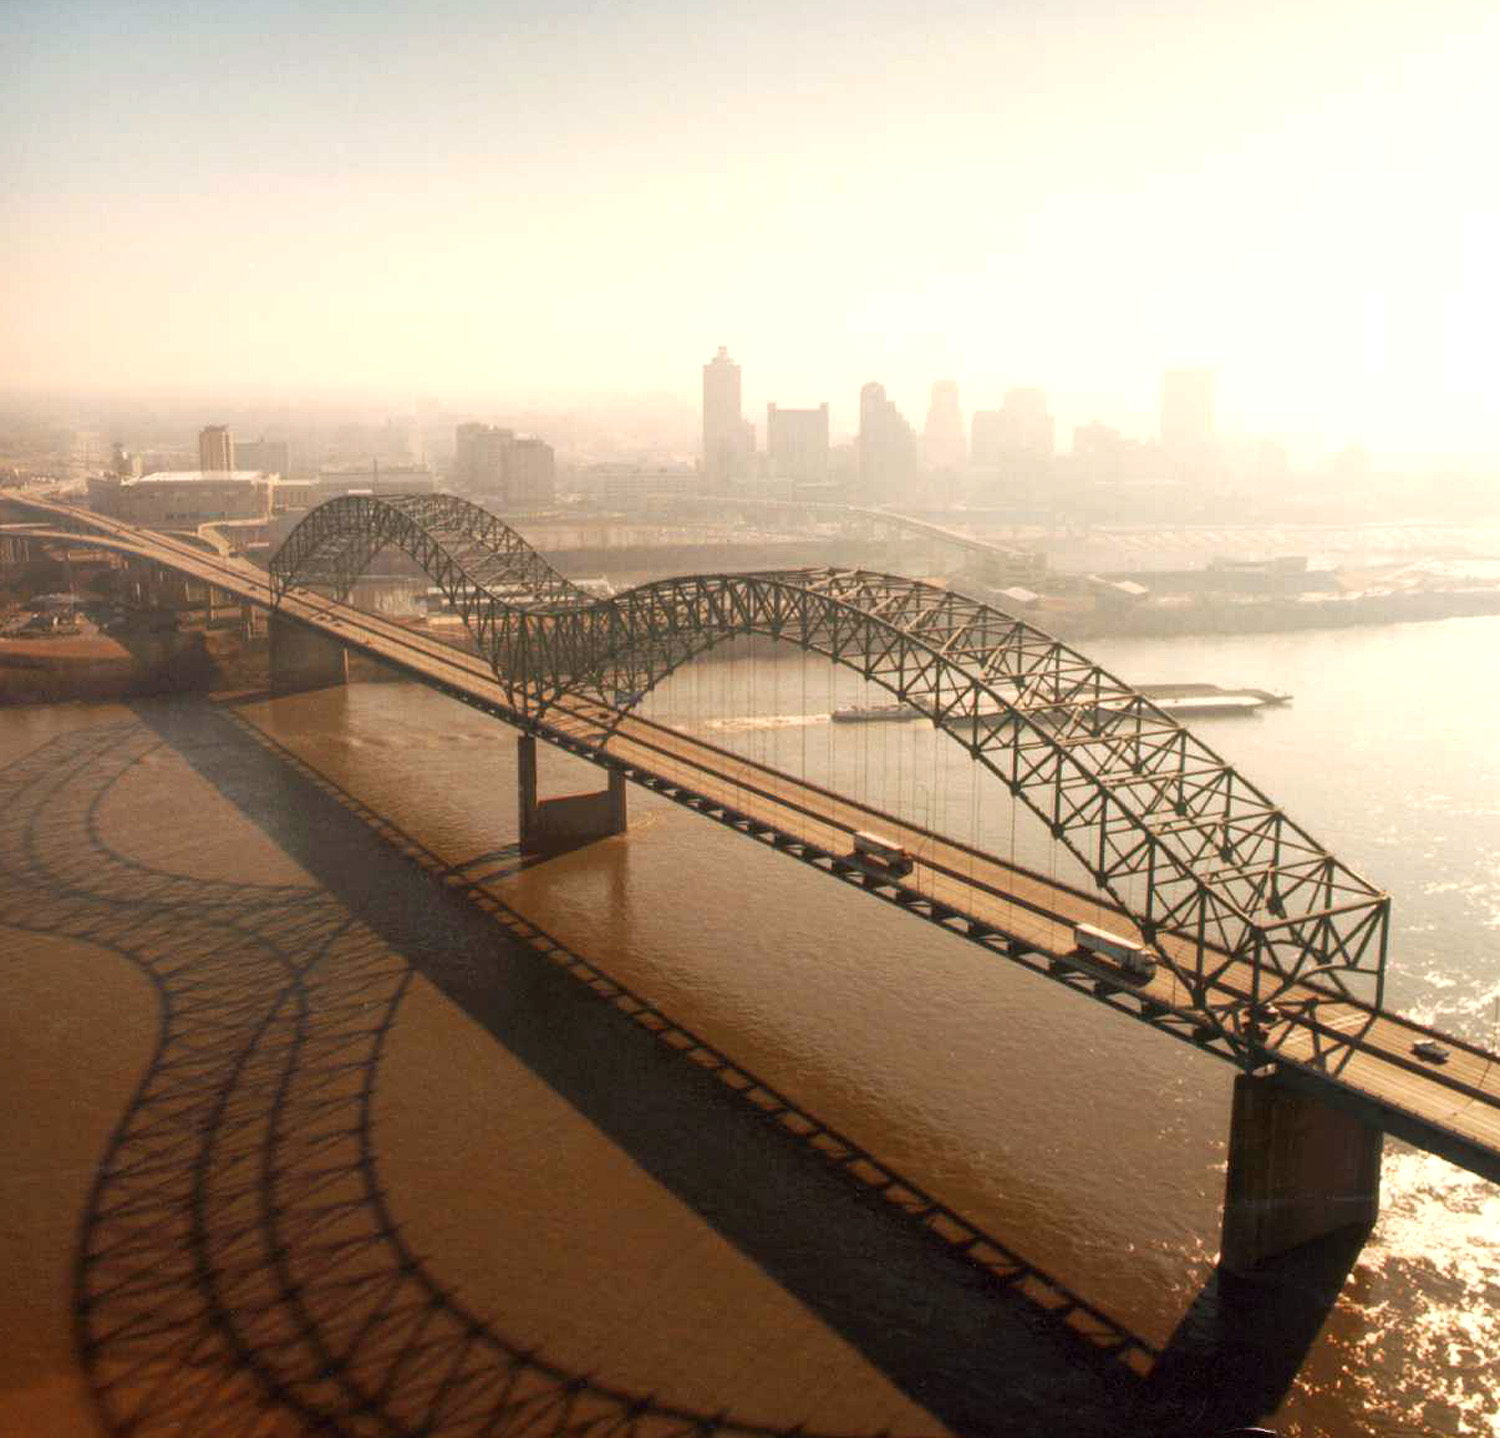 http://upload.wikimedia.org/wikipedia/commons/8/8c/Hernando_de_Soto_Bridge_Memphis.jpg